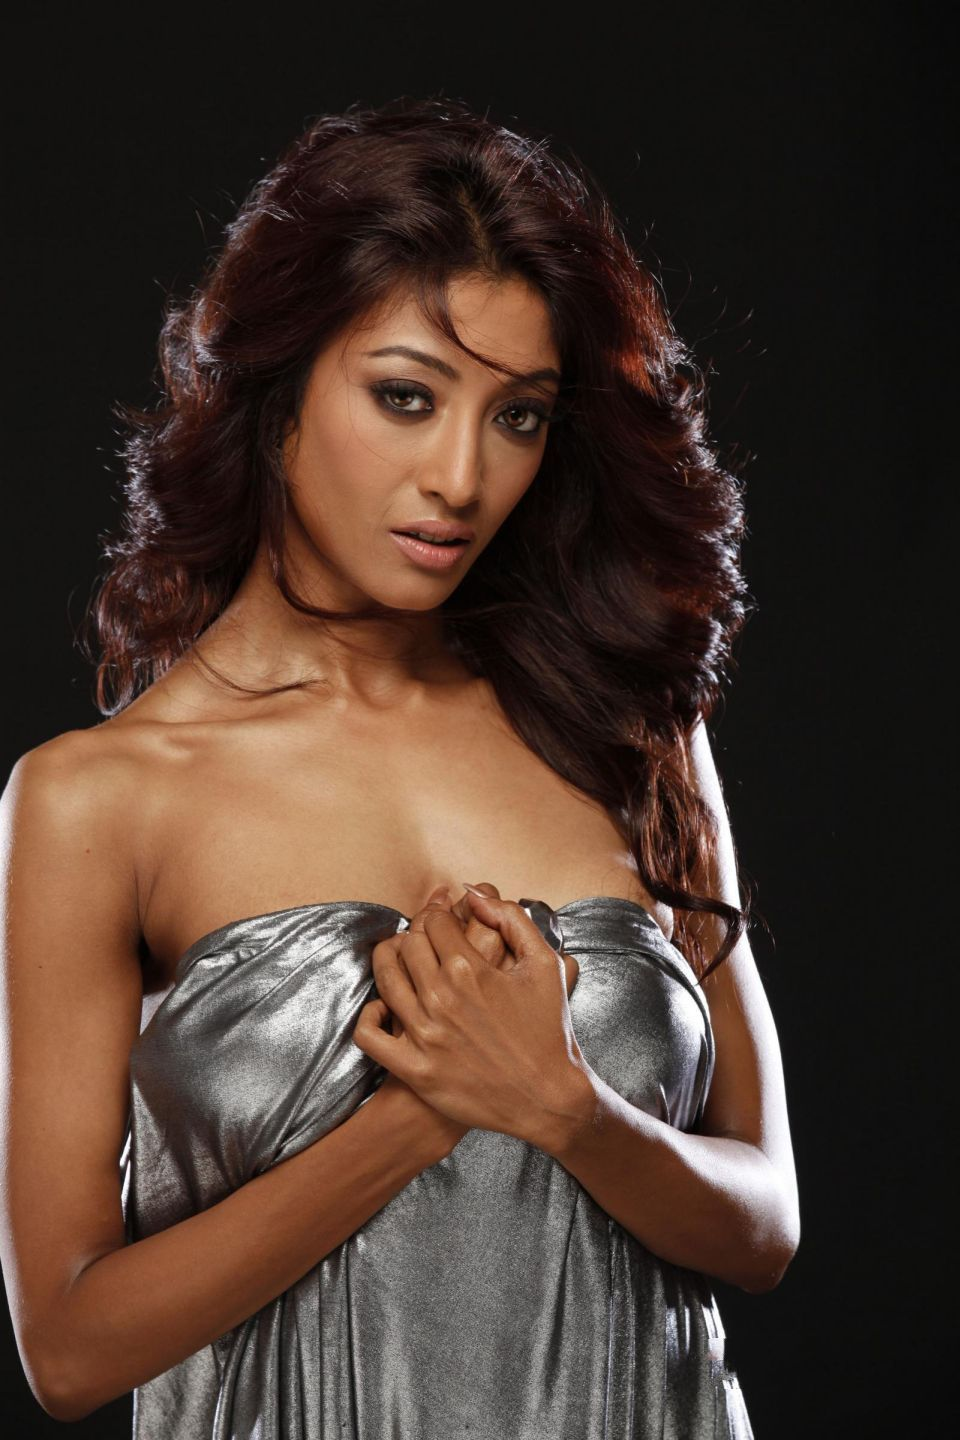 Paoli Dam Hot Stills From Hate Story